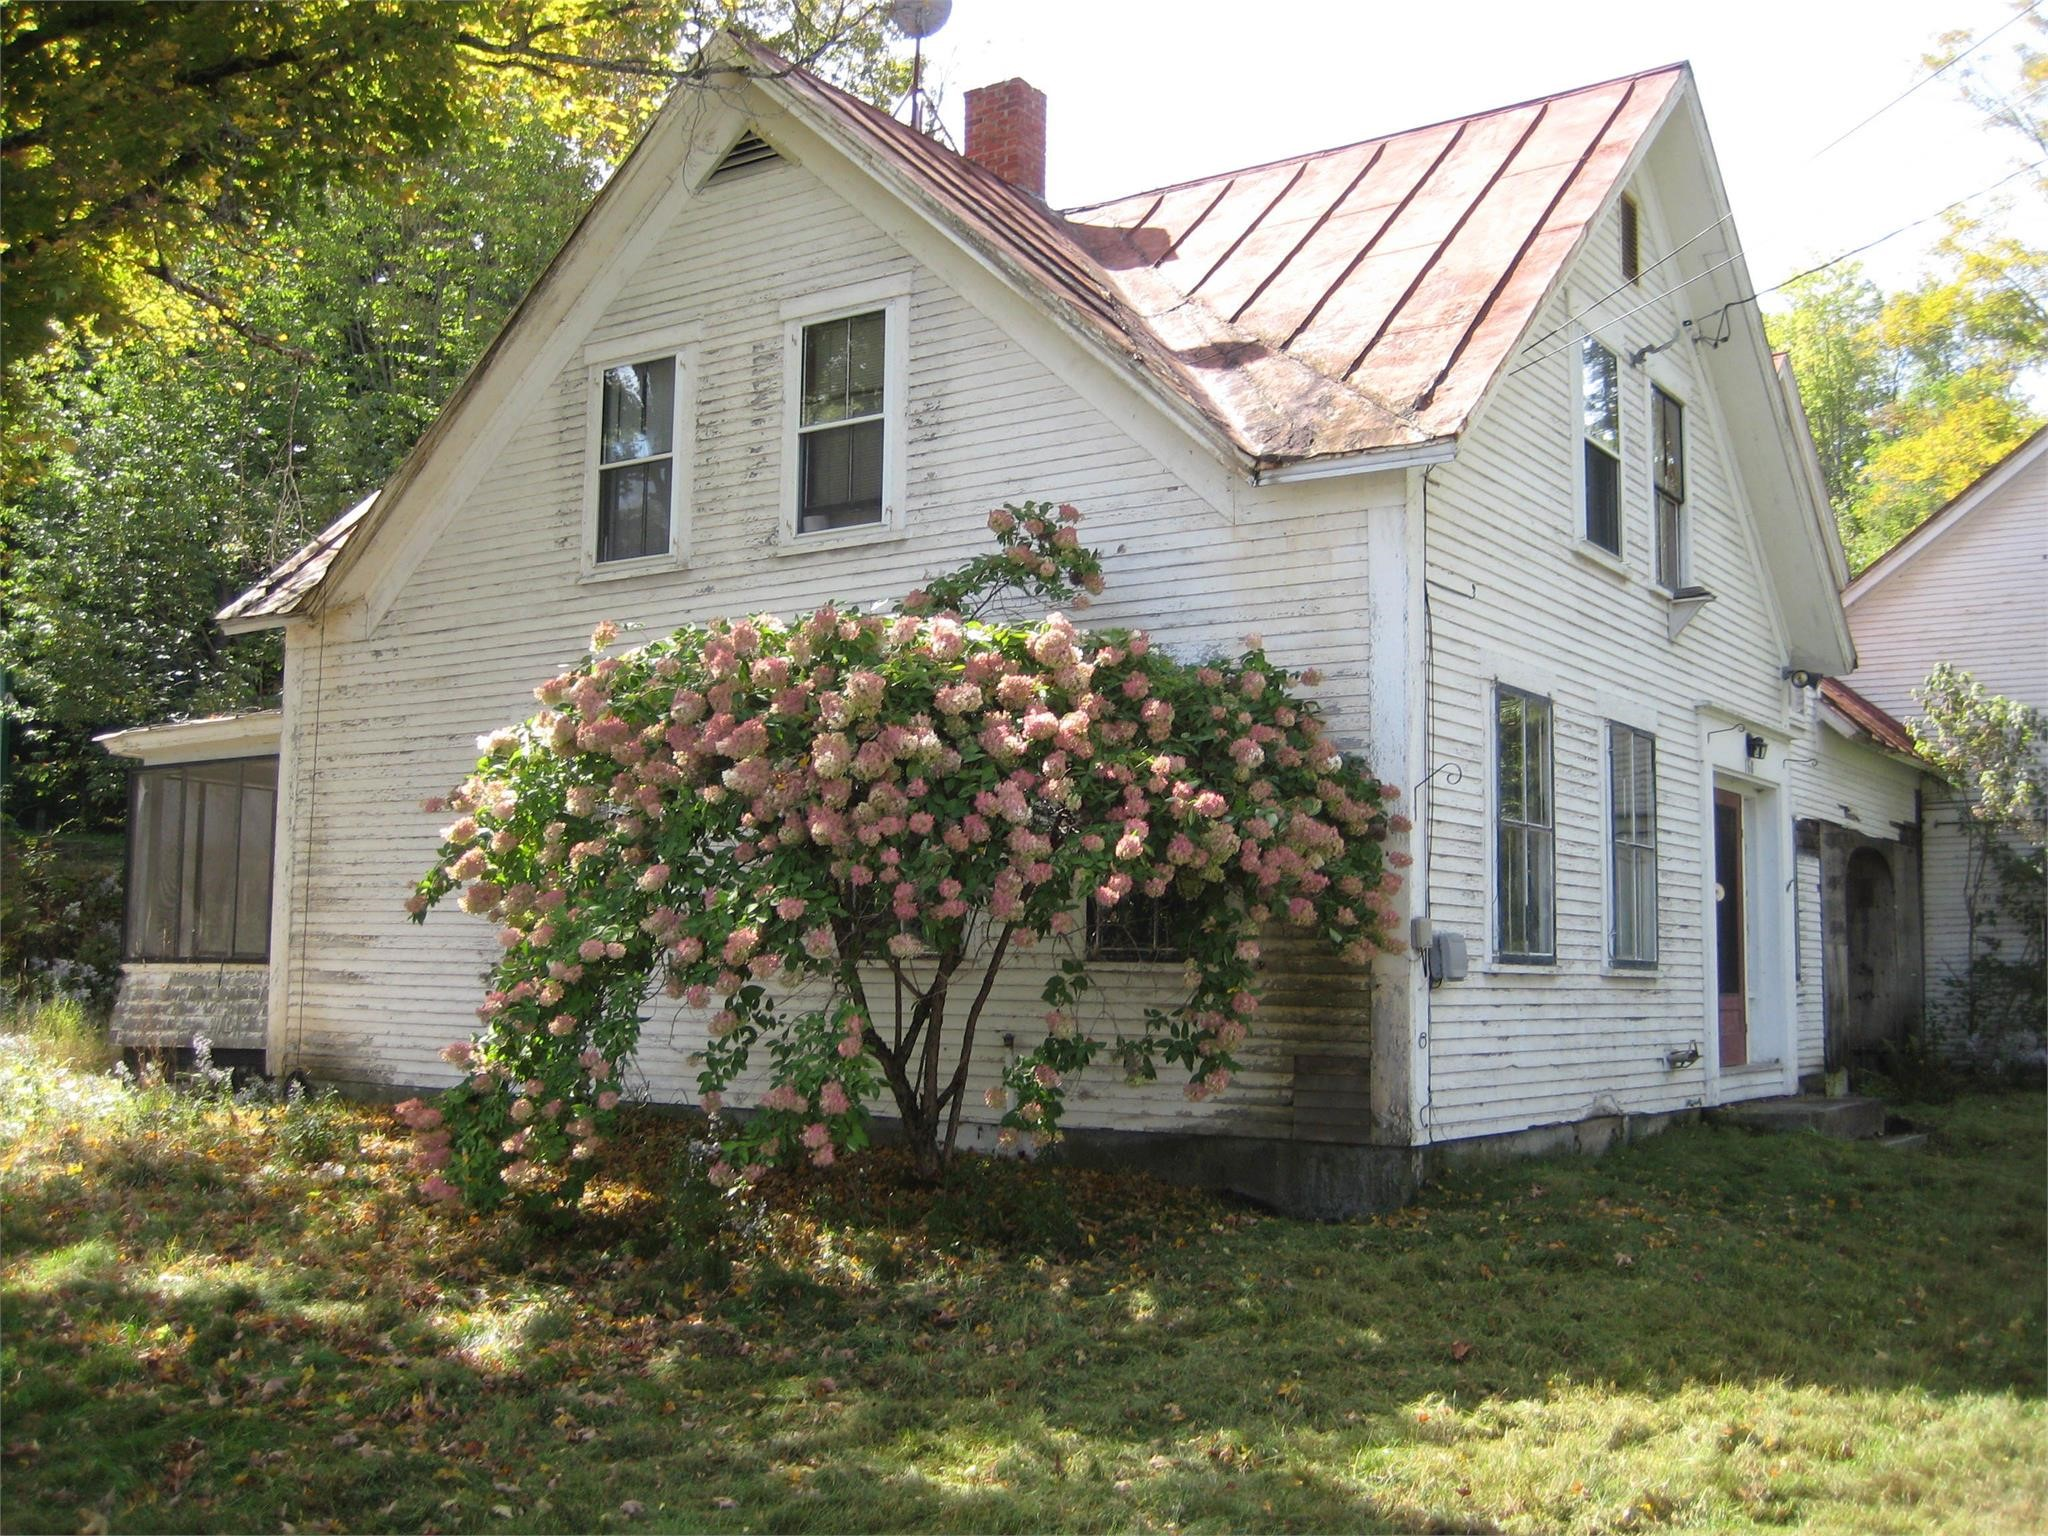 Vermont Farmhouse with Barn on 12.4 Acres! (ONLINE AUCTION)